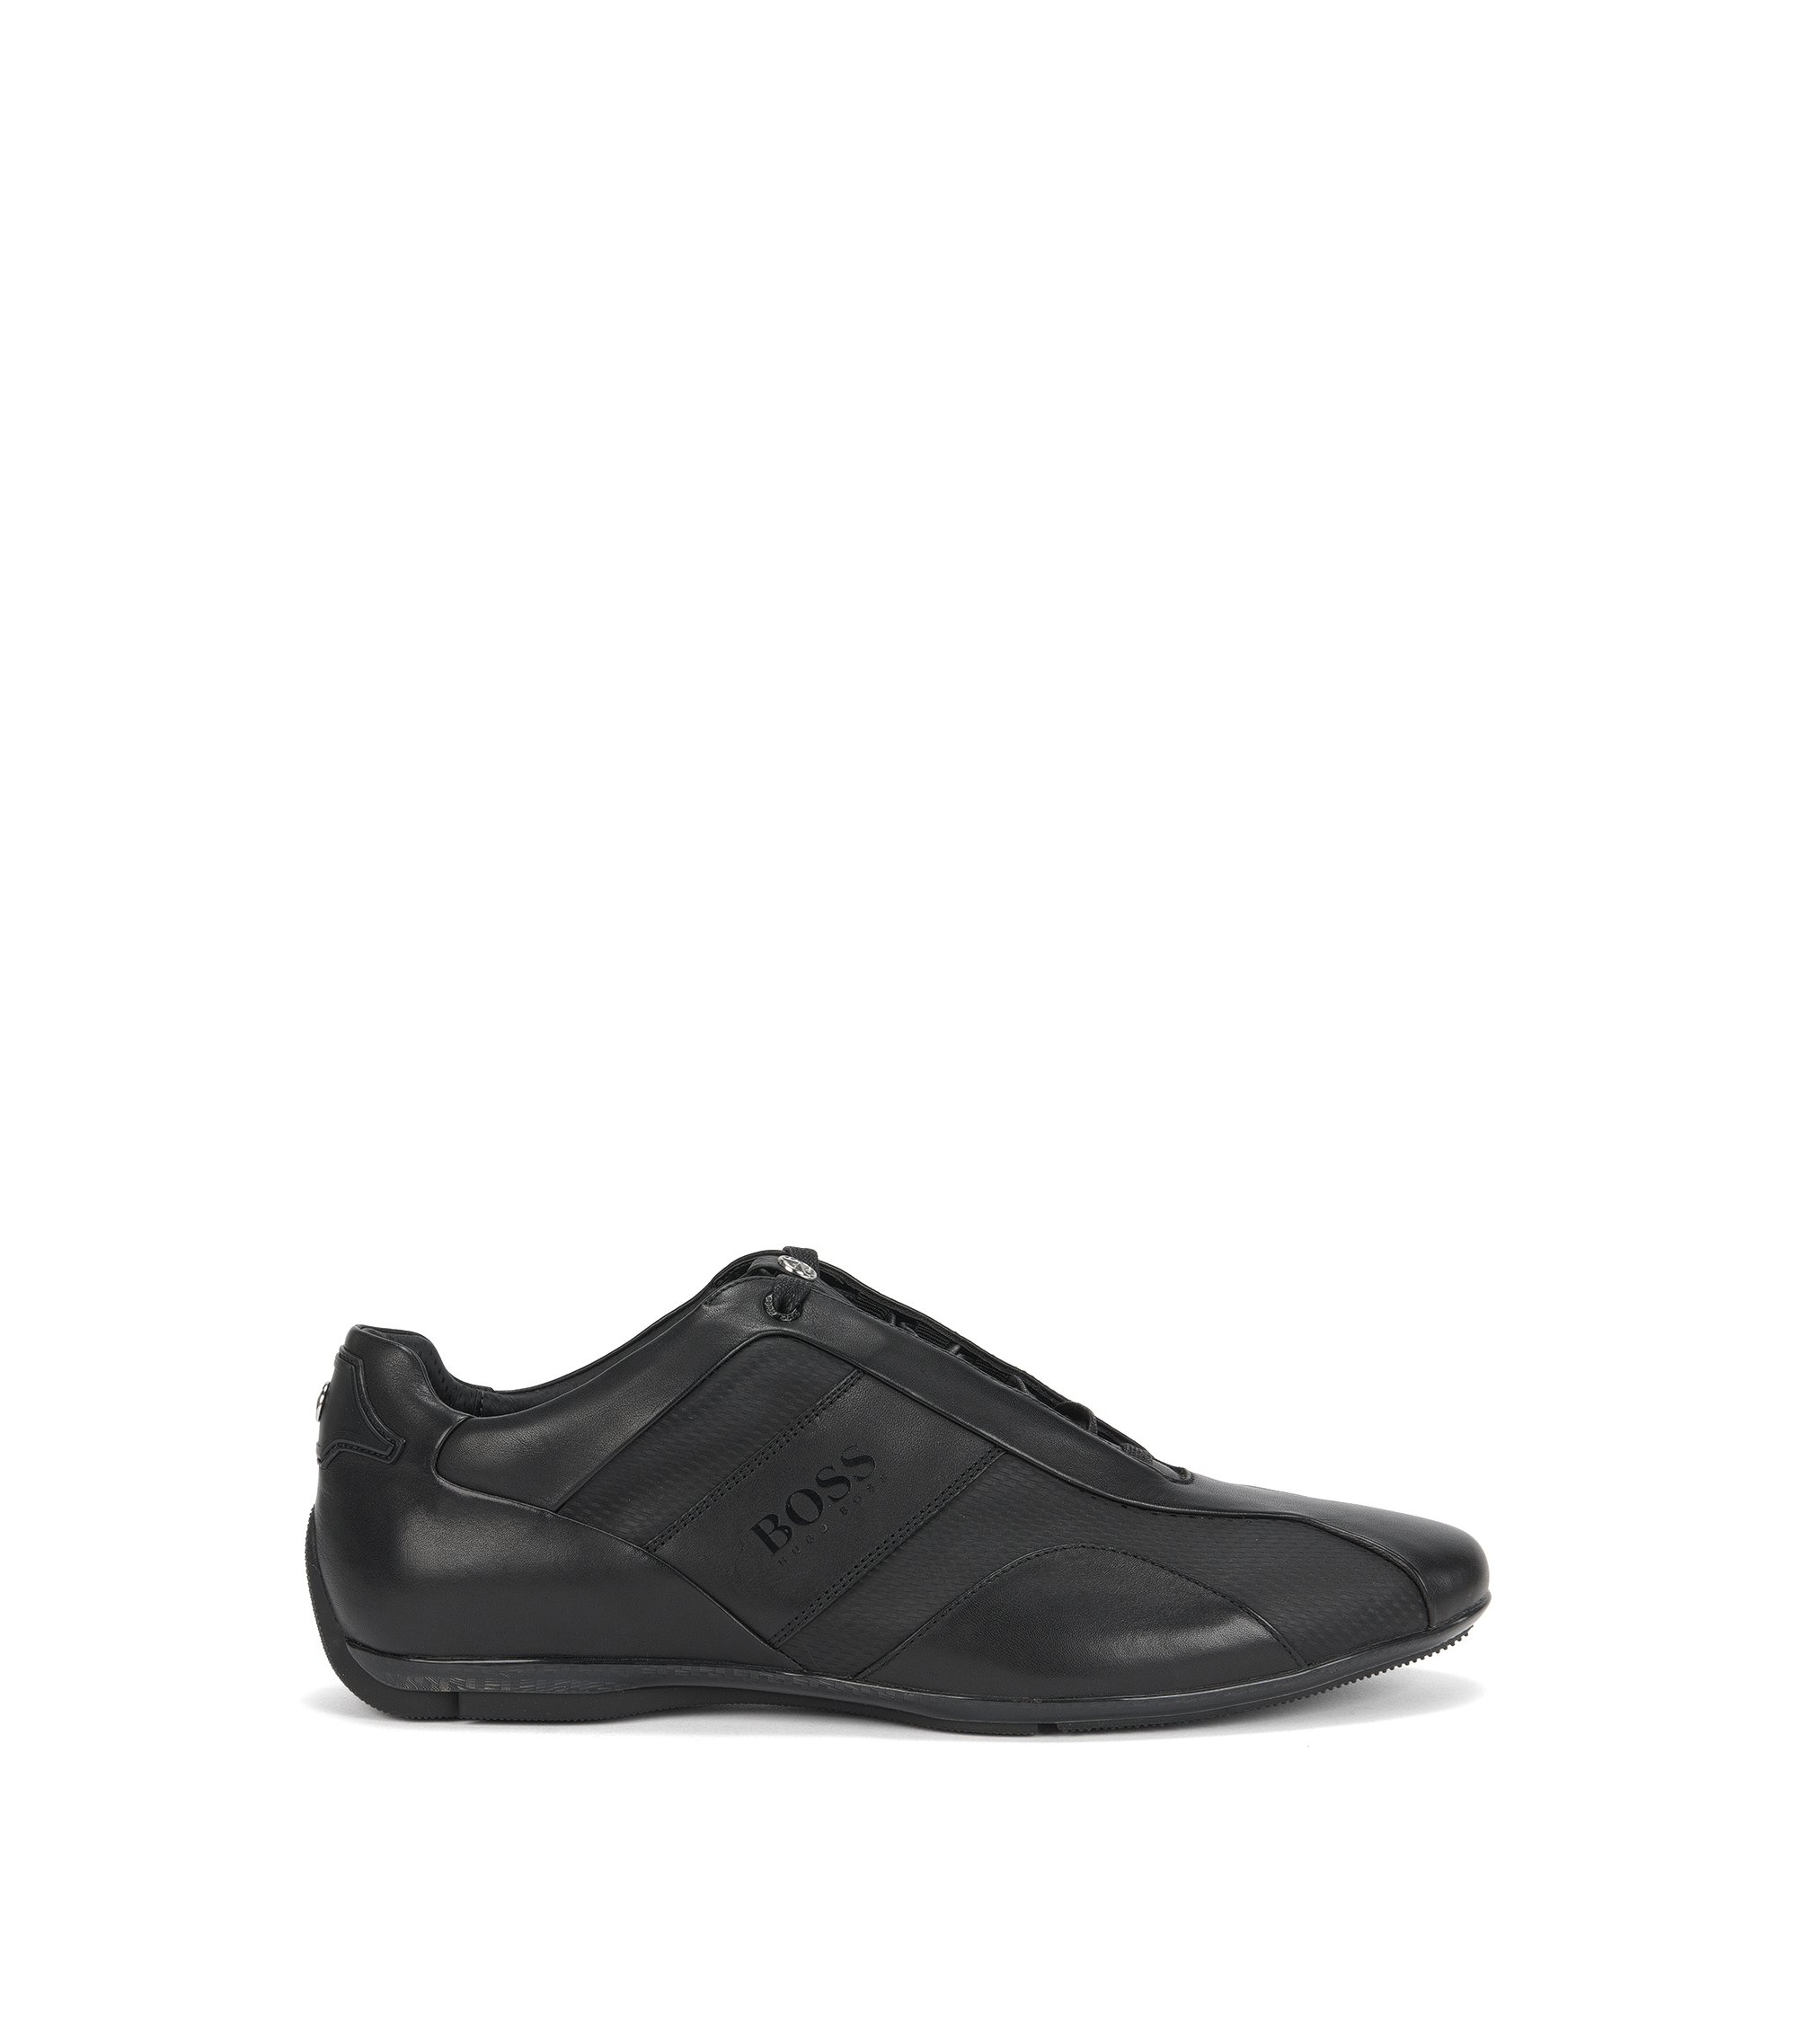 Mercedes-Benz Leather Sneaker | Sporty Lowp Mcmb, Black